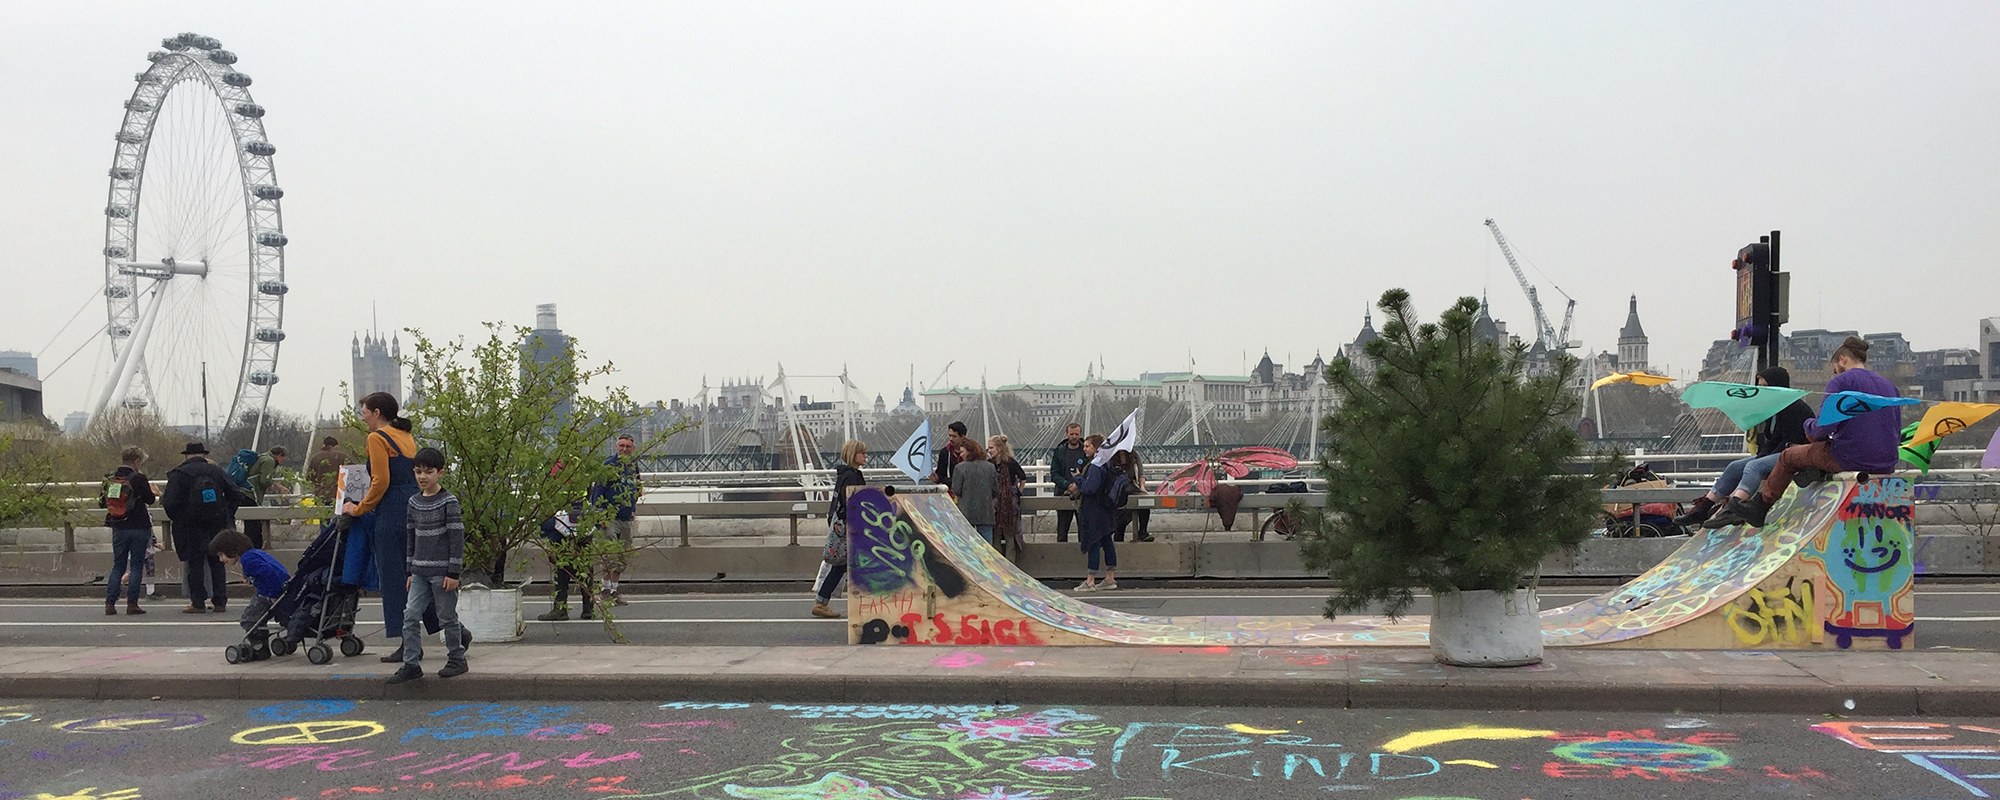 The skate ramp in the morning on Waterloo Bridge